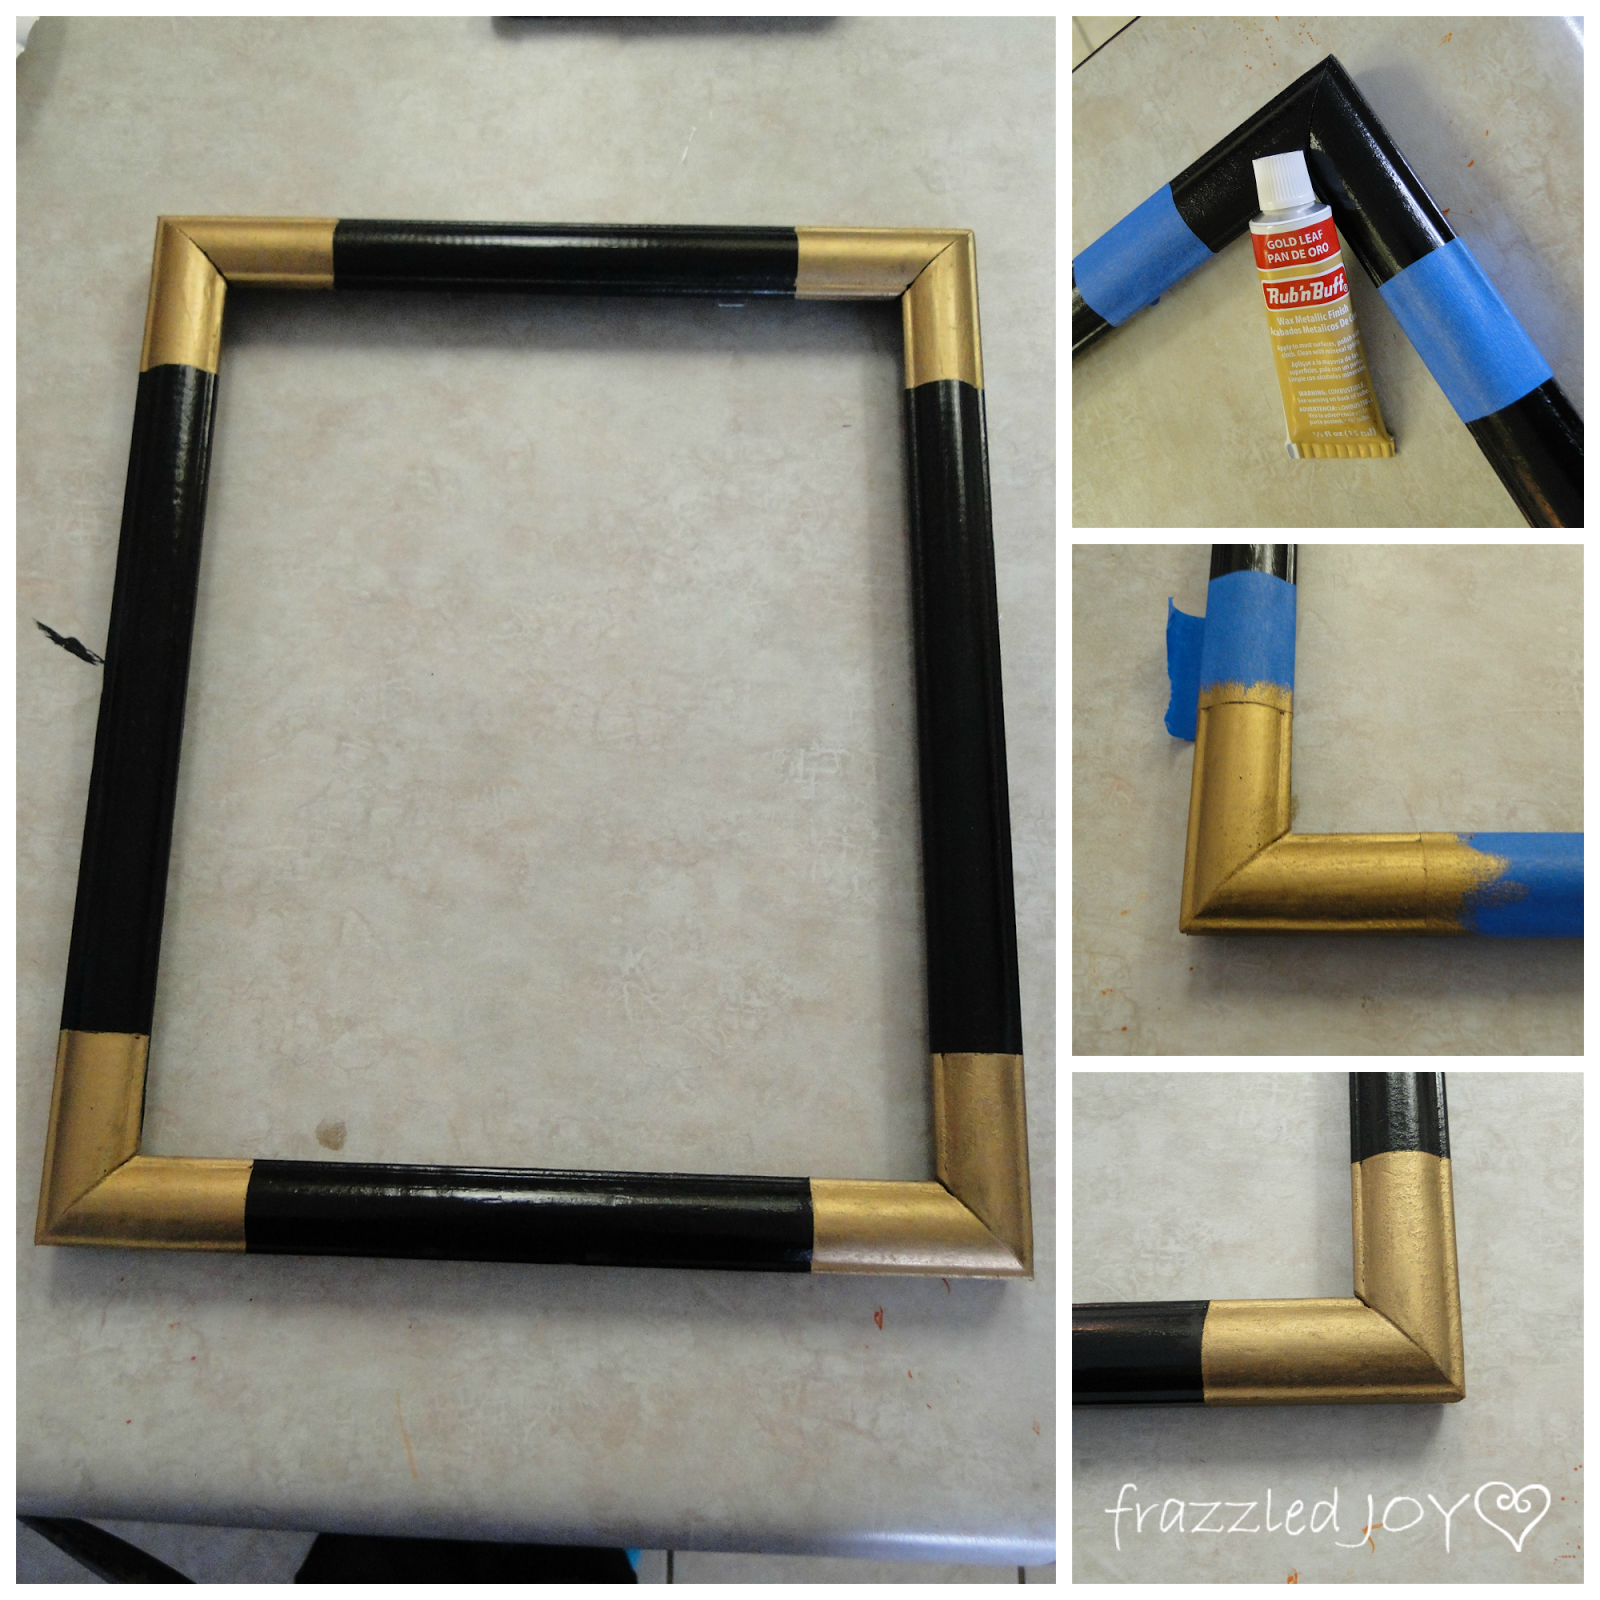 thrifted frames updated with gold rub n buff corners